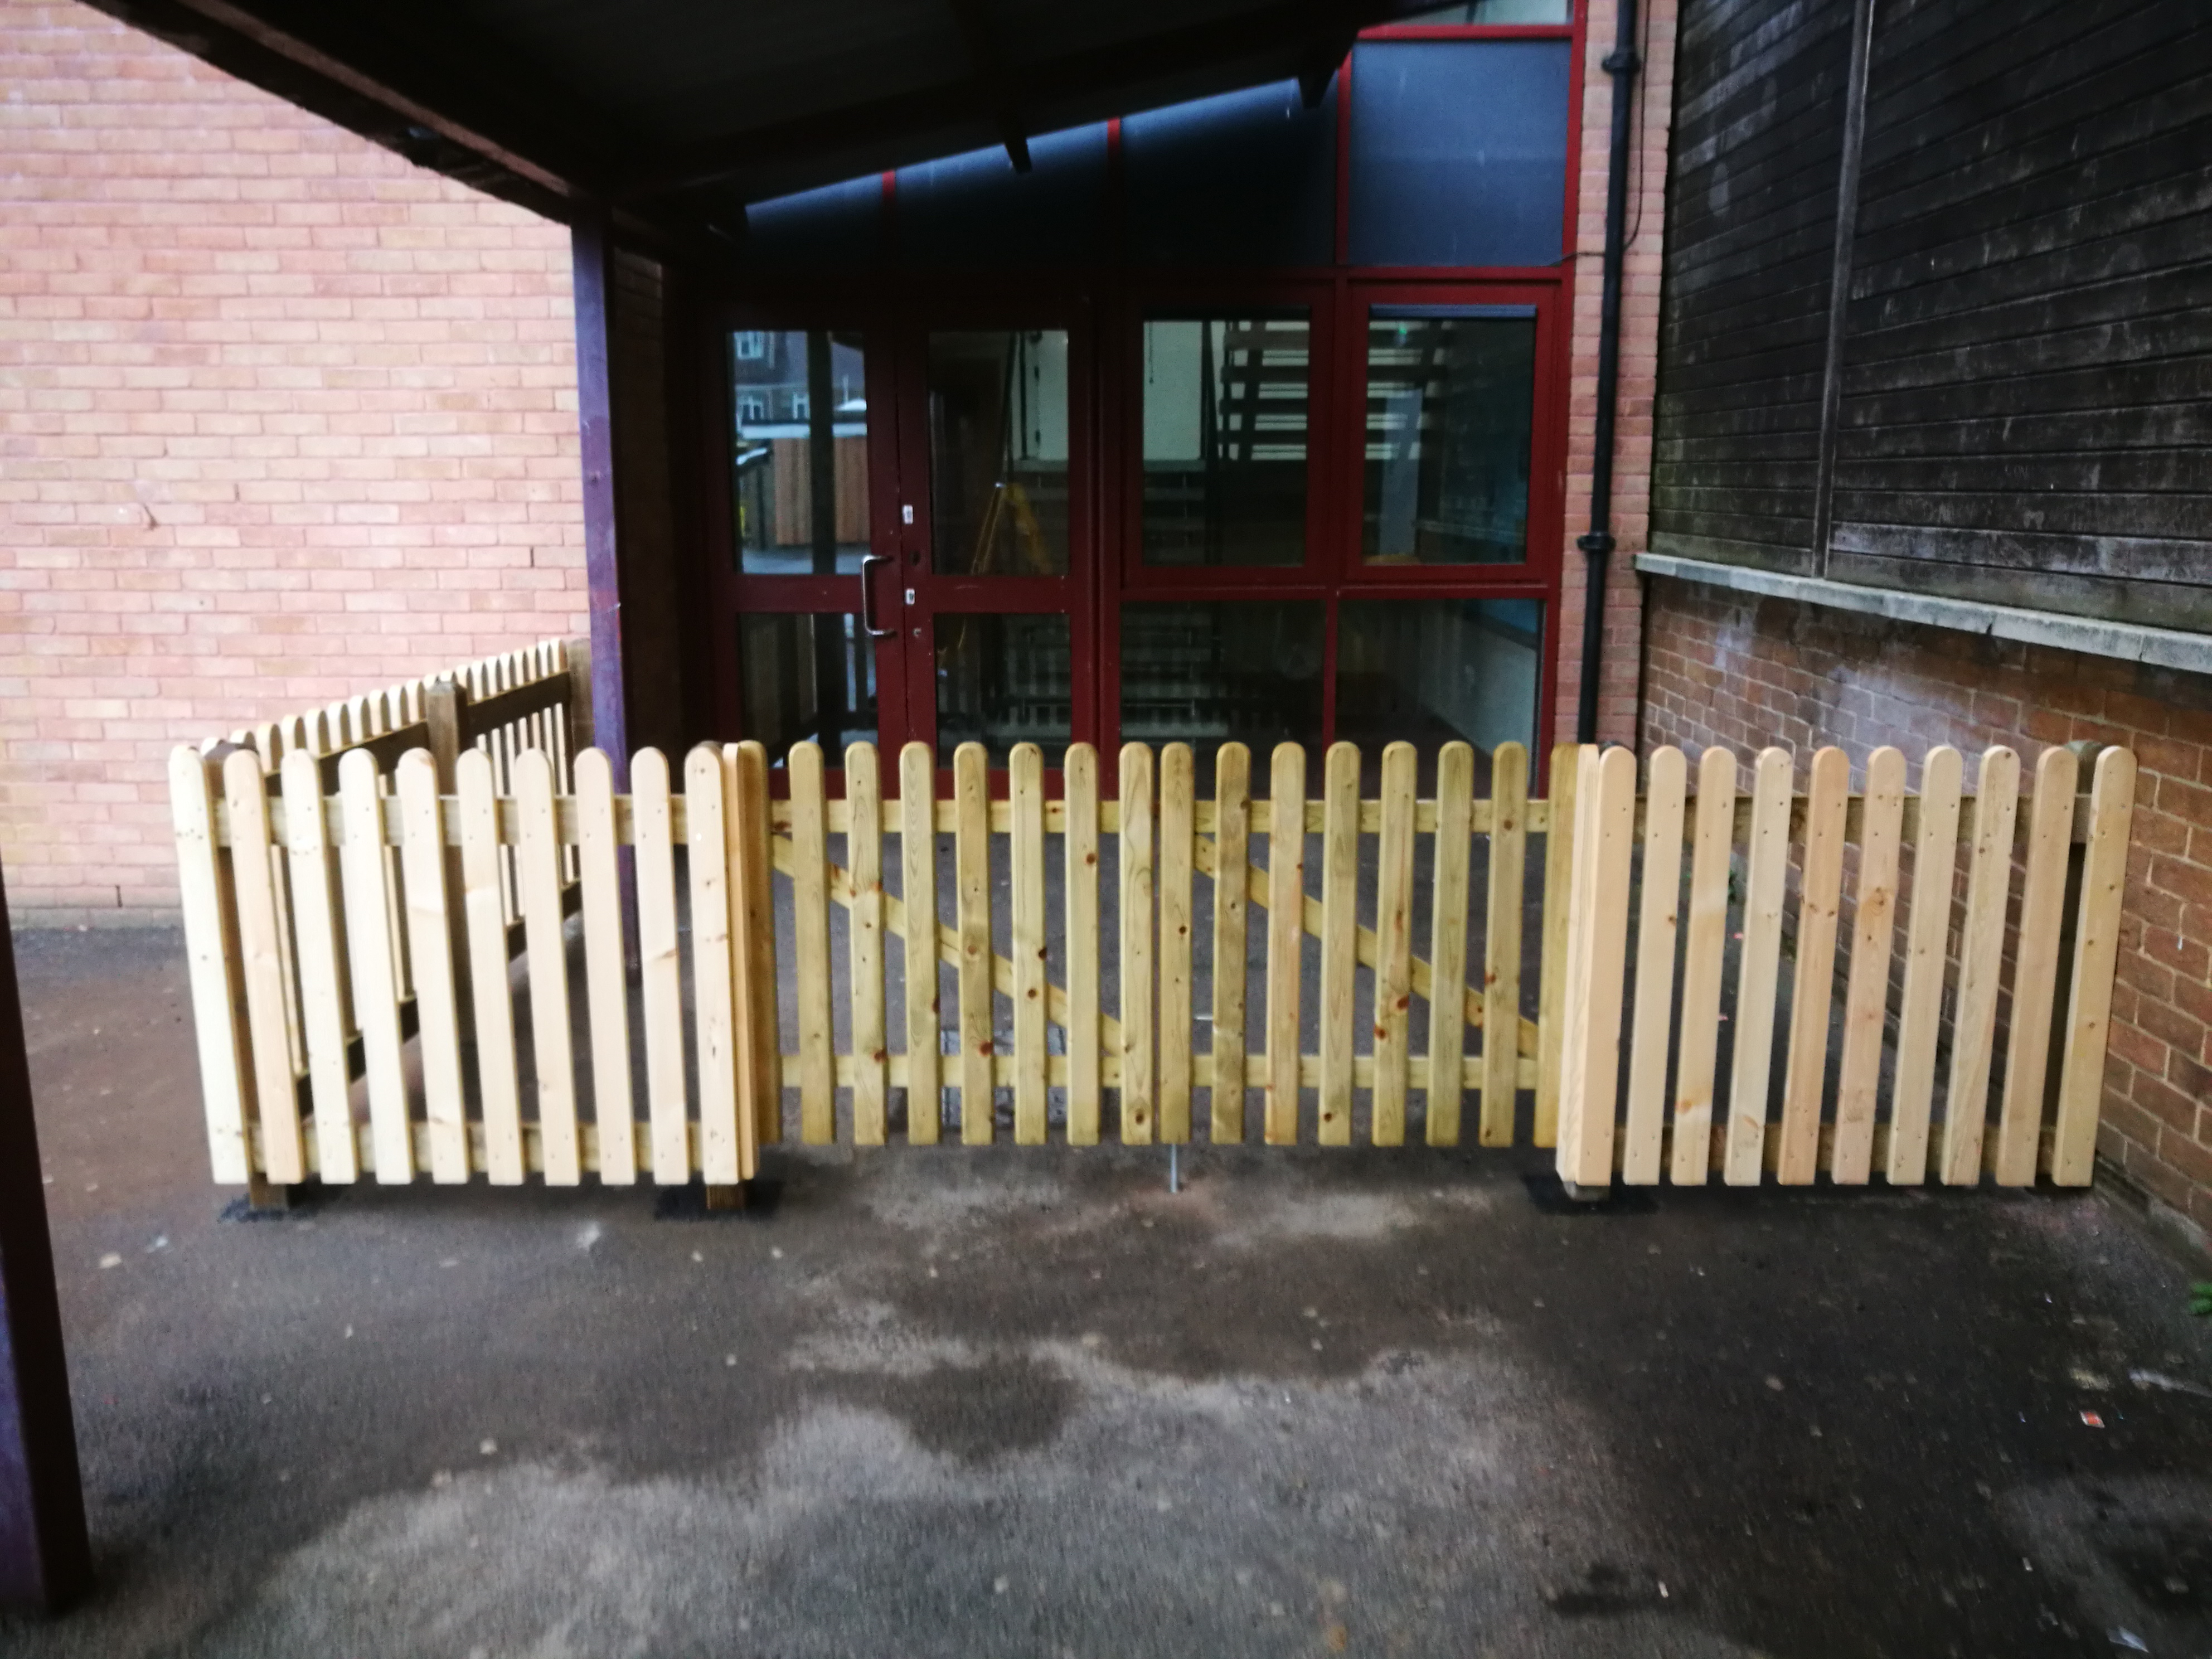 Fencing at Trafalgar school